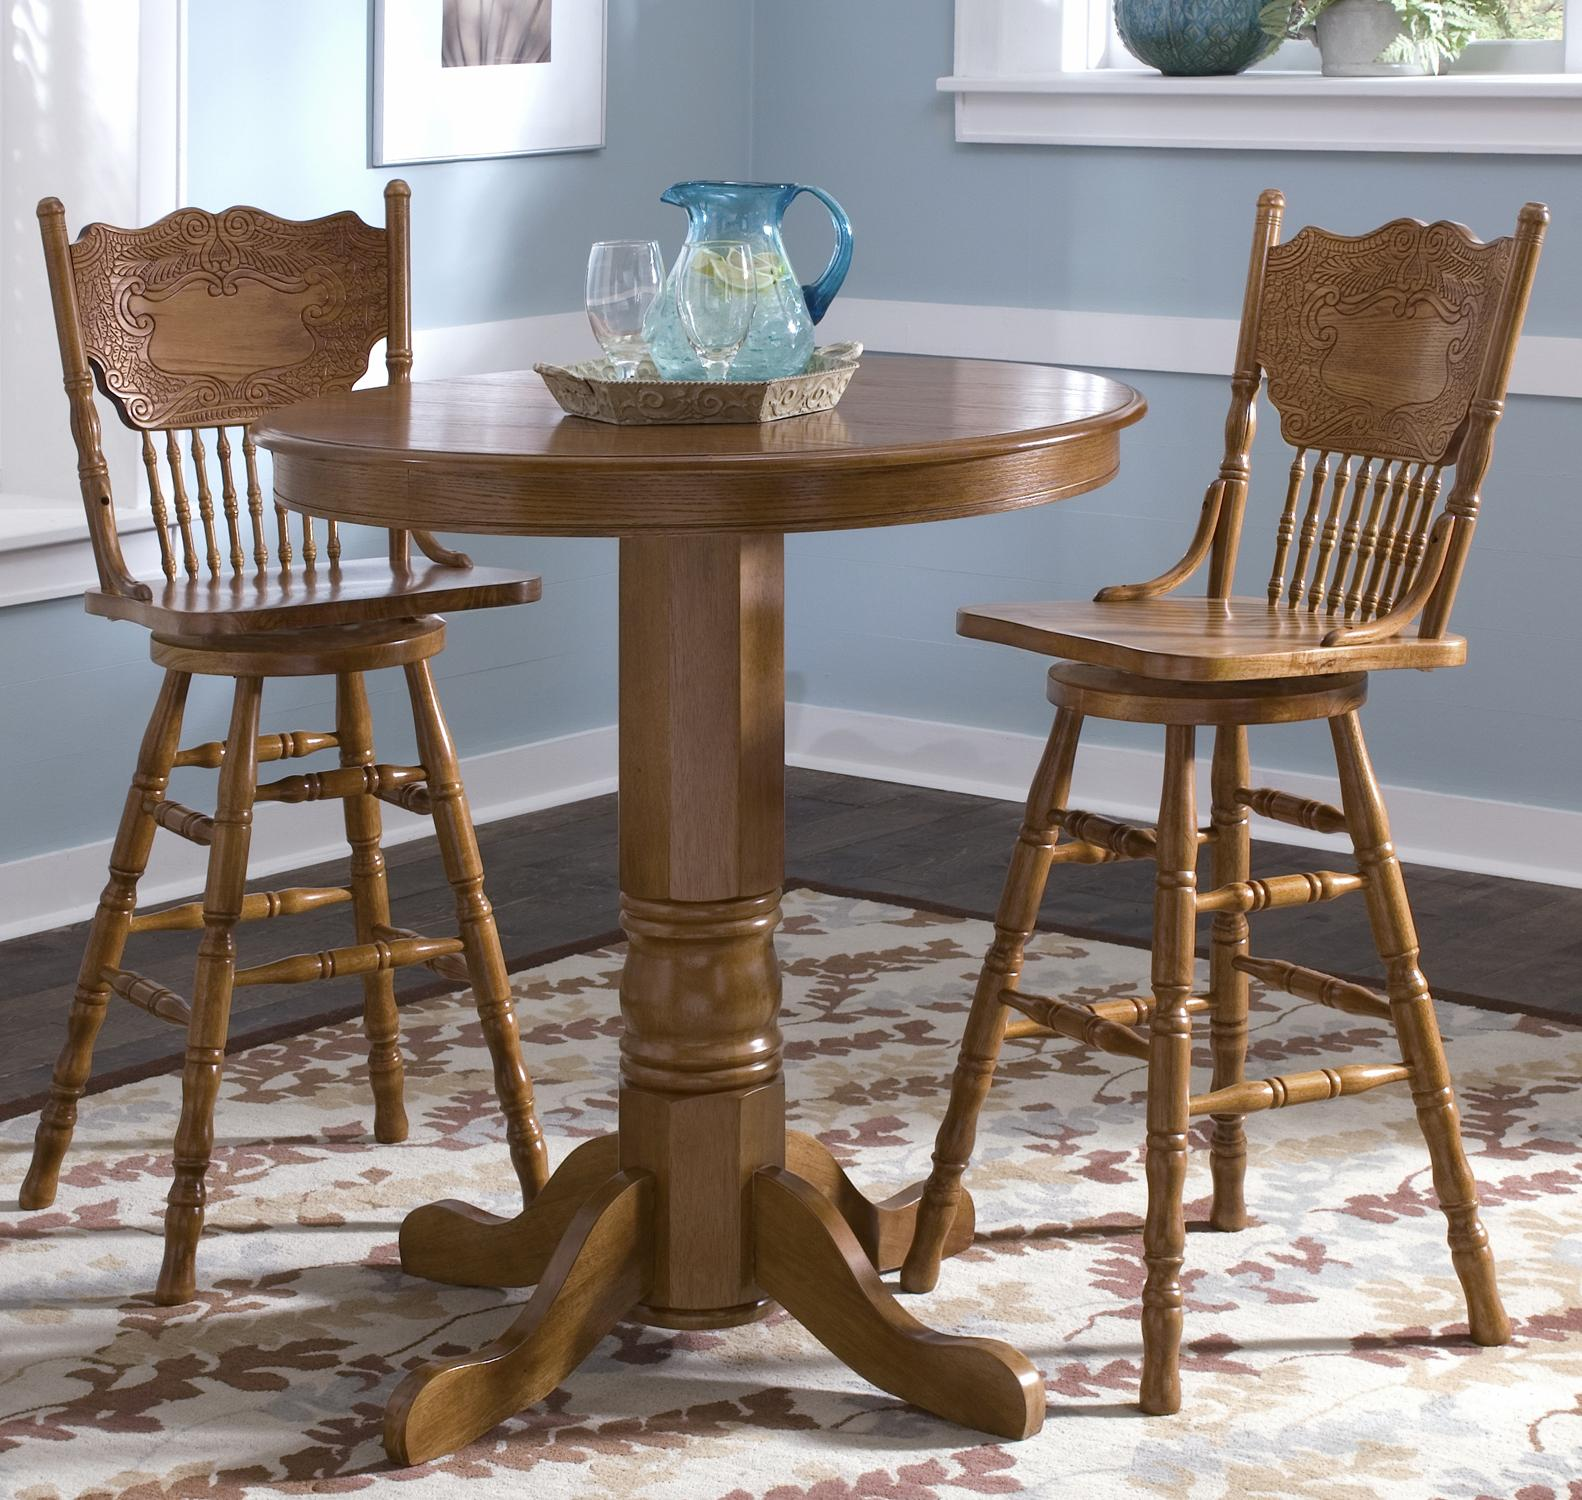 Liberty Furniture Nostalgia 3 Piece Round Pub Table Dining Set Furniture And Appliancemart